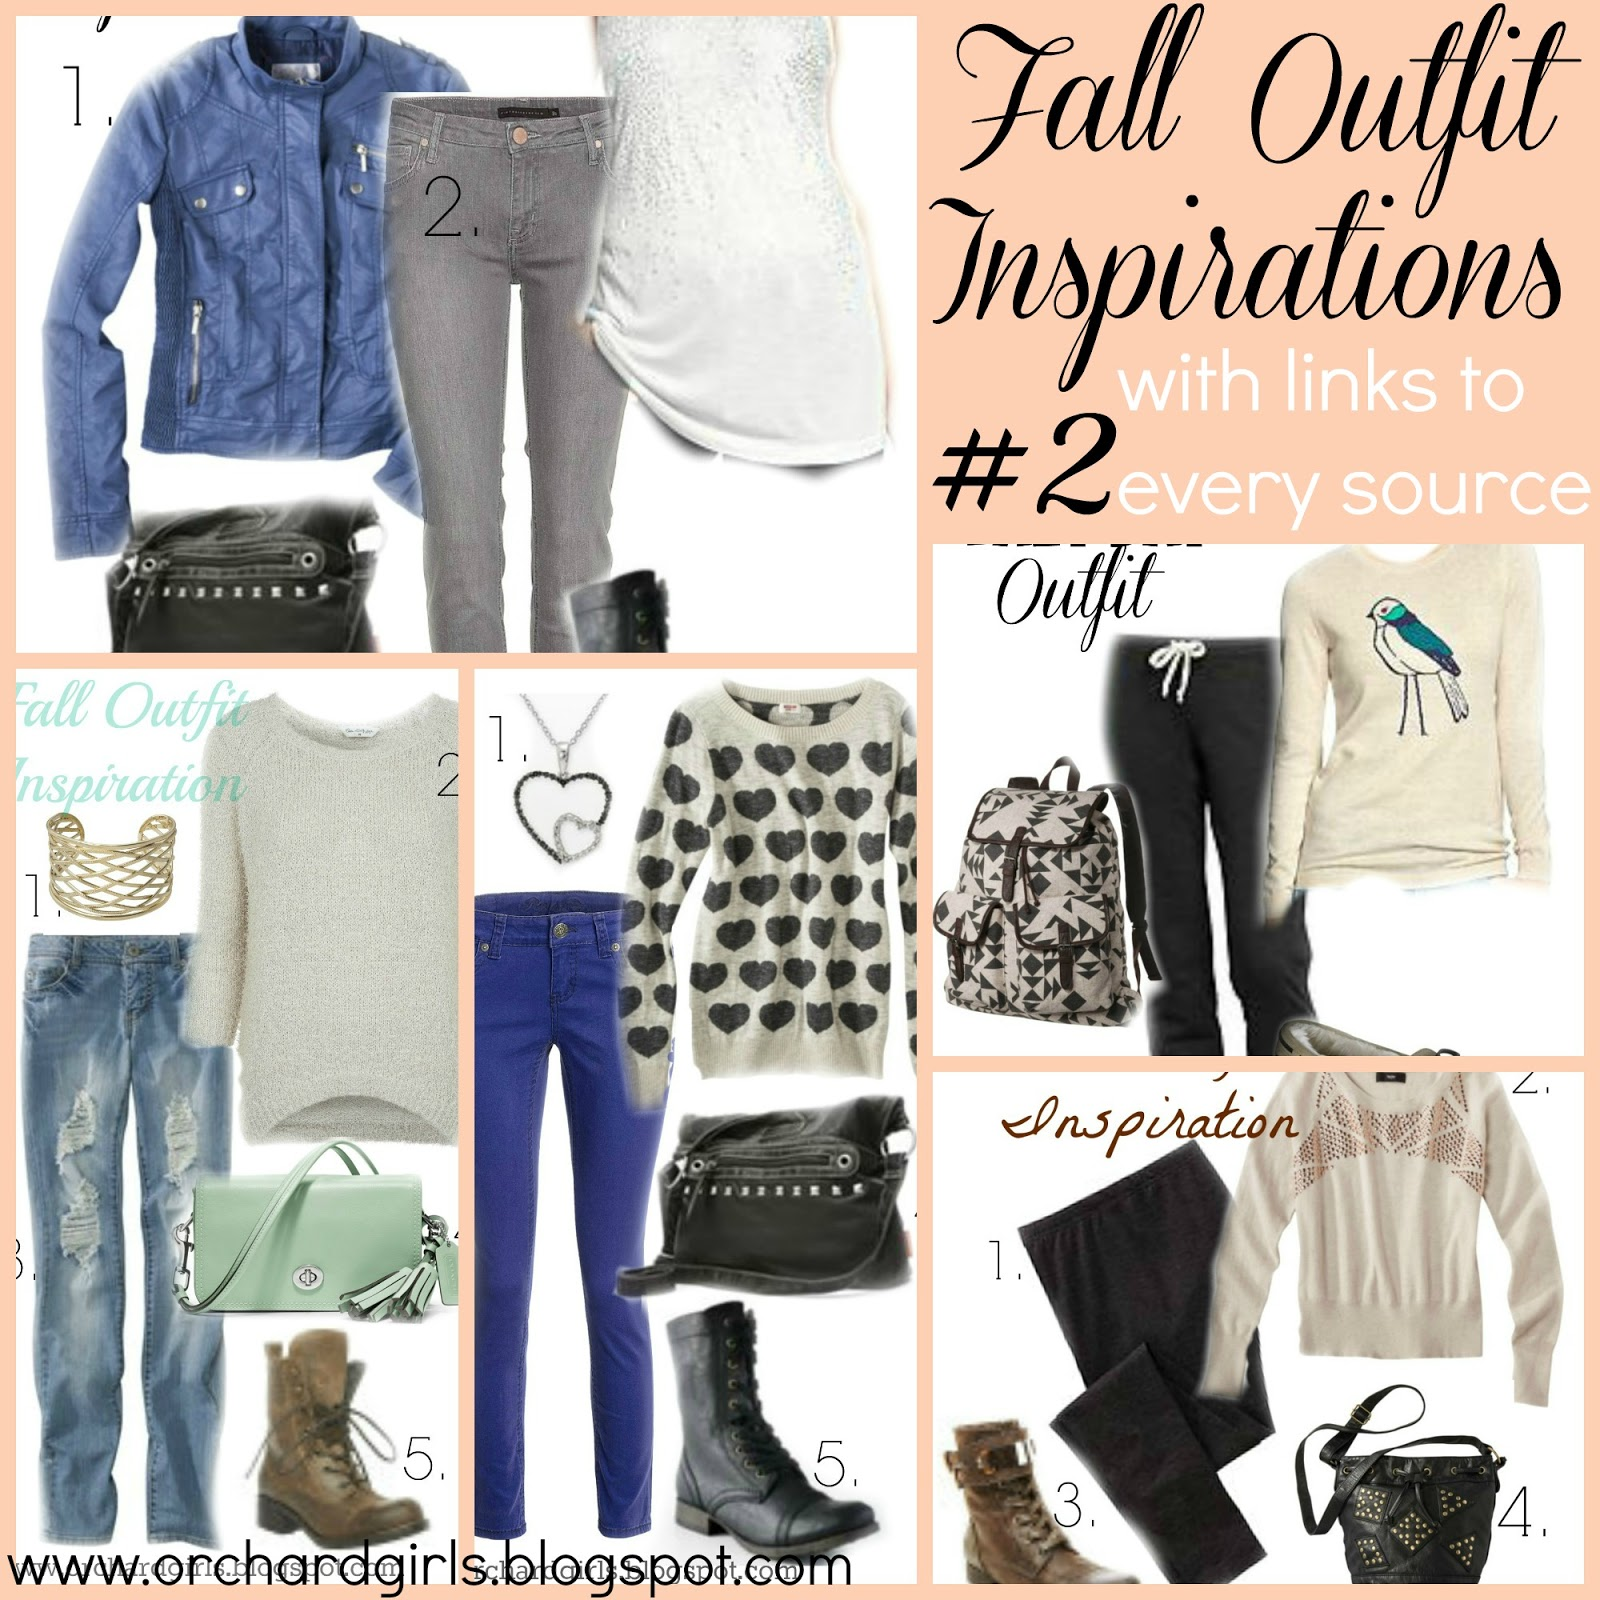 Orchard Girls: Fall Outfit Inspiration #2